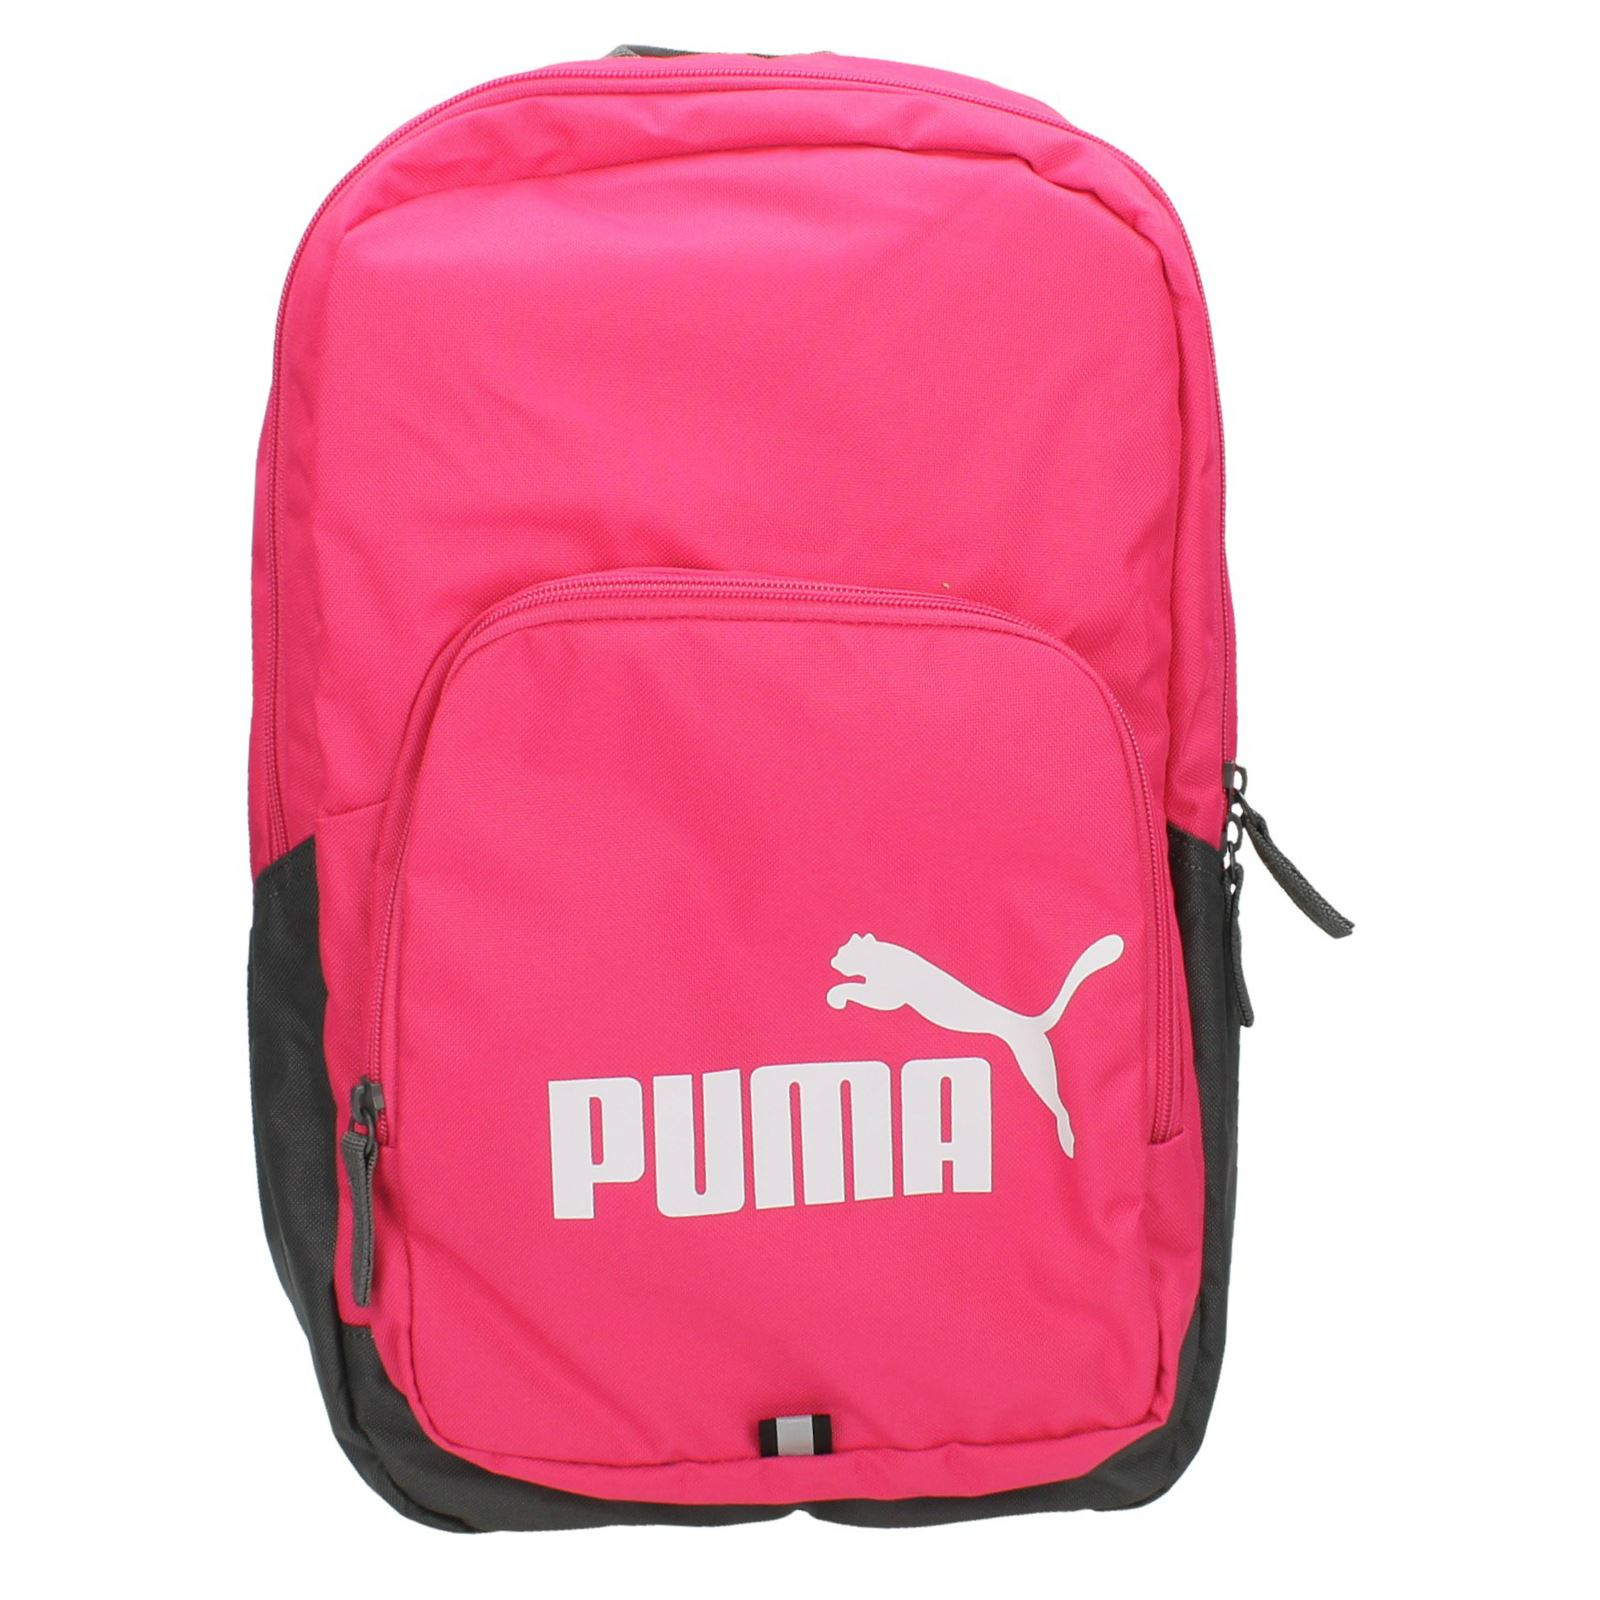 Girls Puma School Bags - Phase | eBay